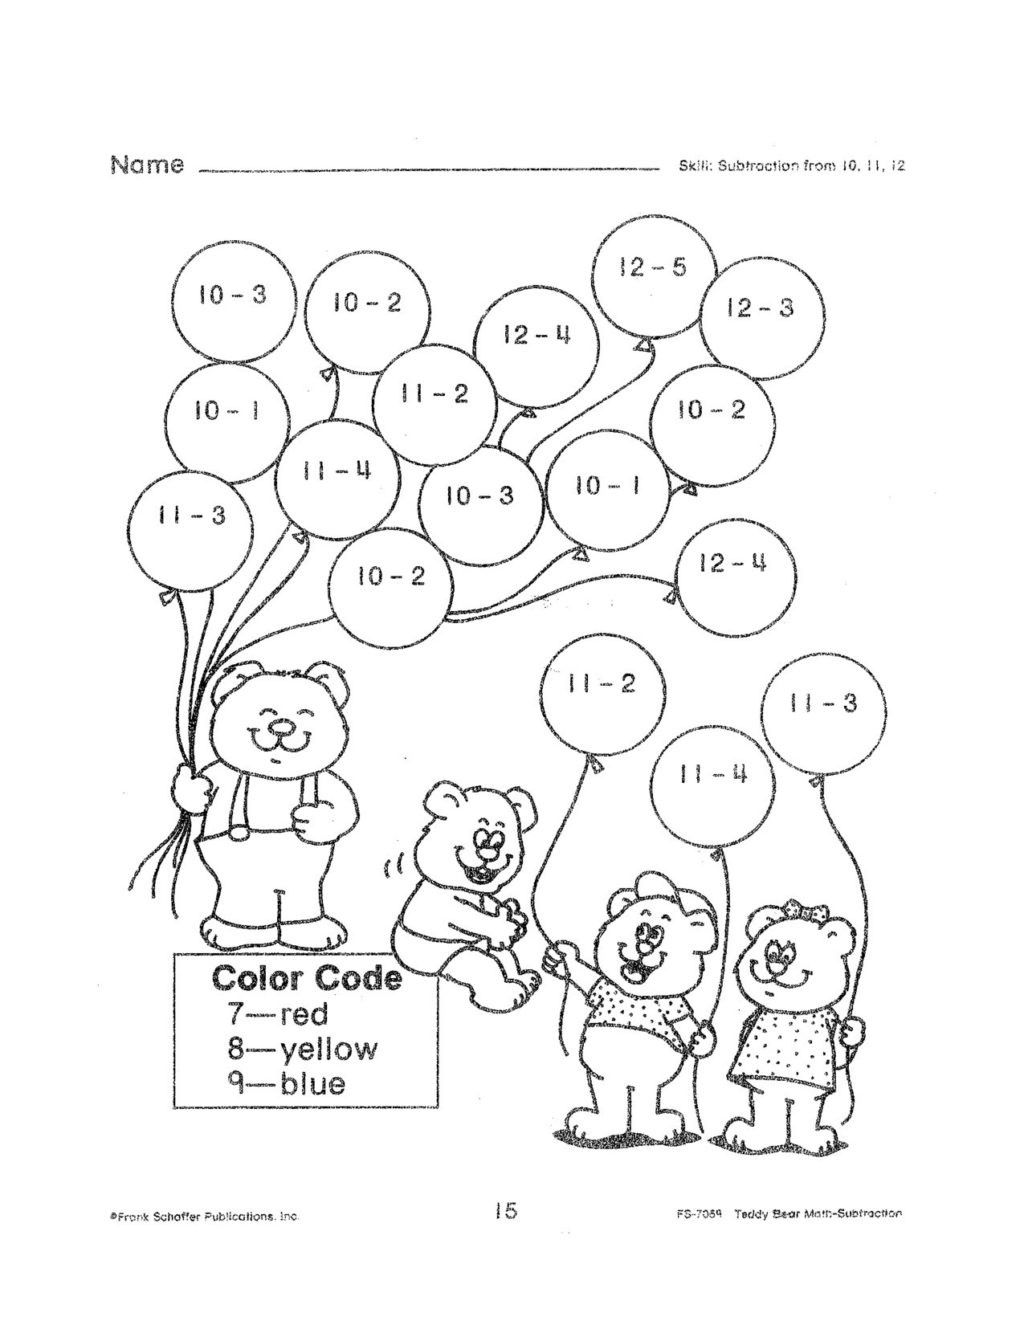 Subtraction Coloring Worksheets 2nd Grade Math Worksheet Fantastic Math Activities for Second Grade